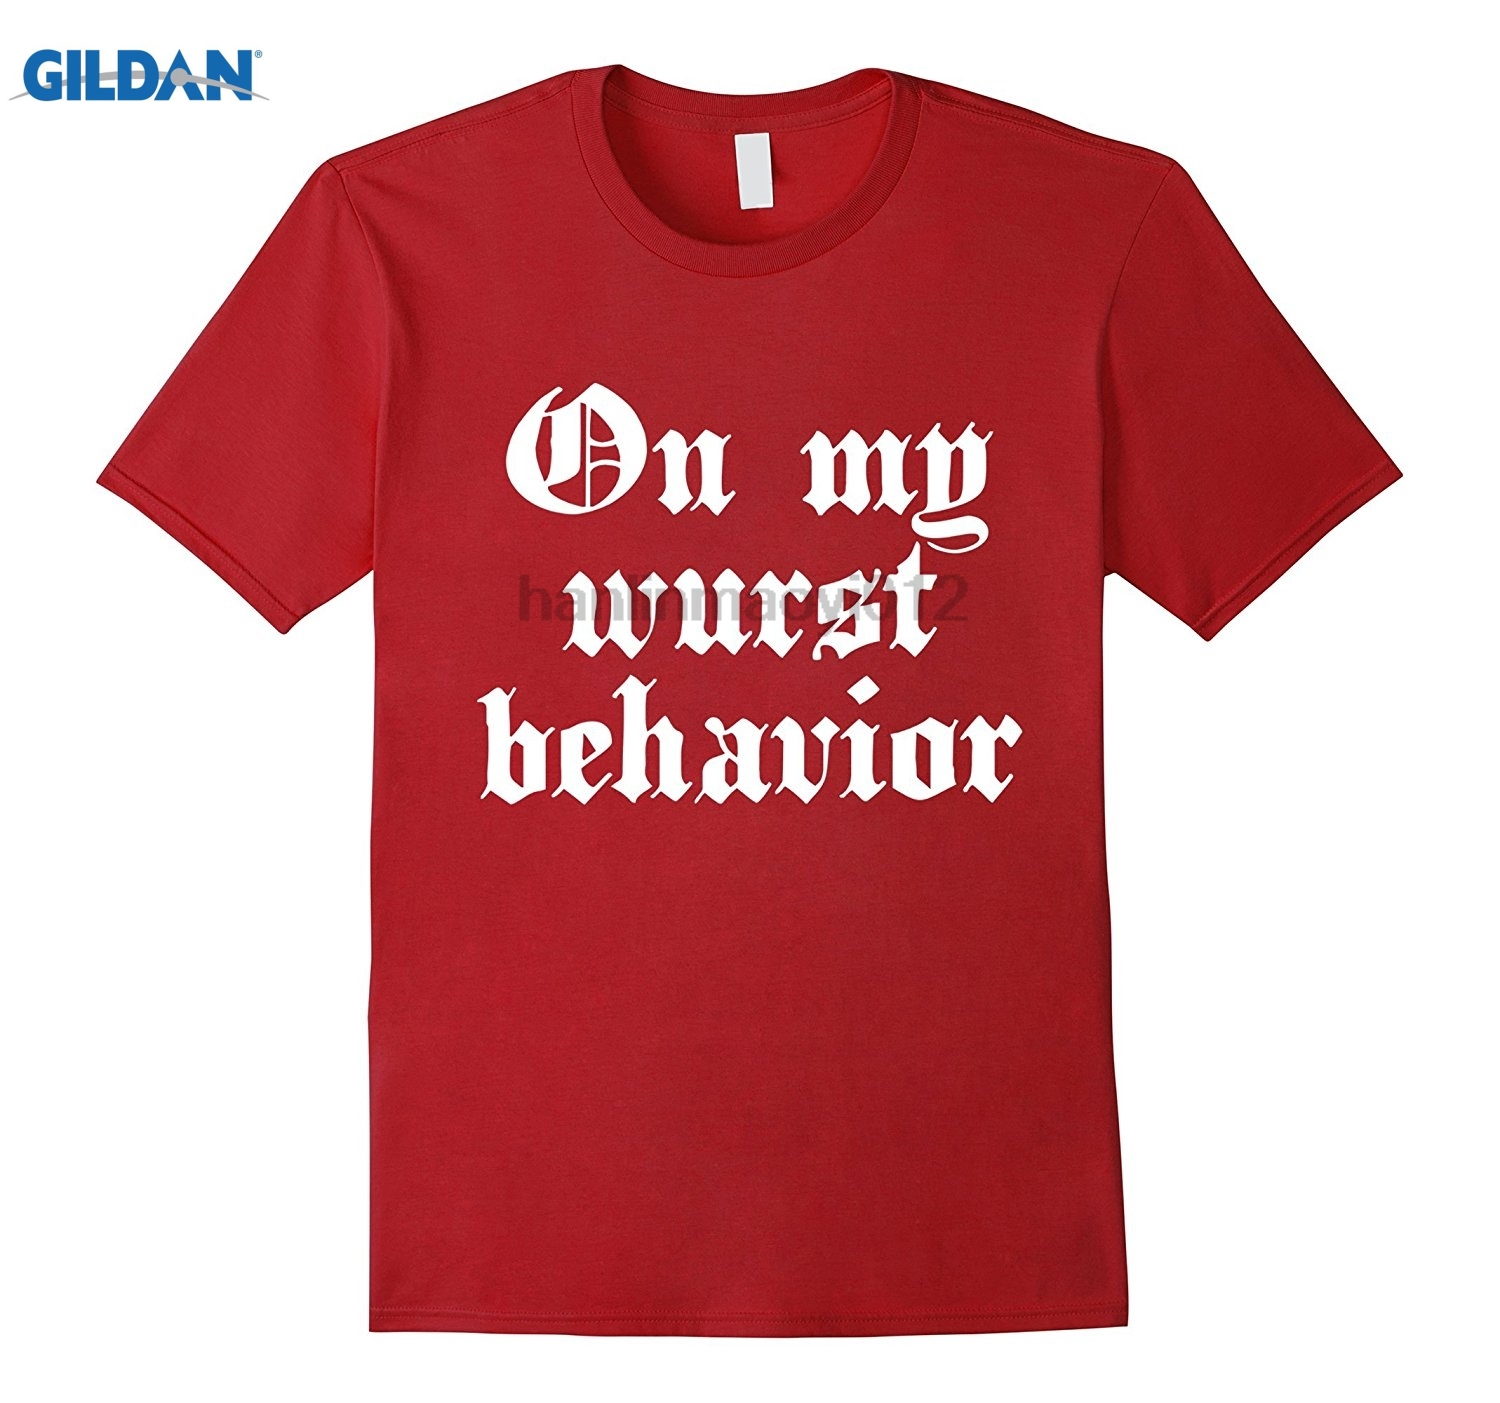 GILDAN Funny Oktoberfest T-shirt, On My Wurst Behavior Dress female T-shirt